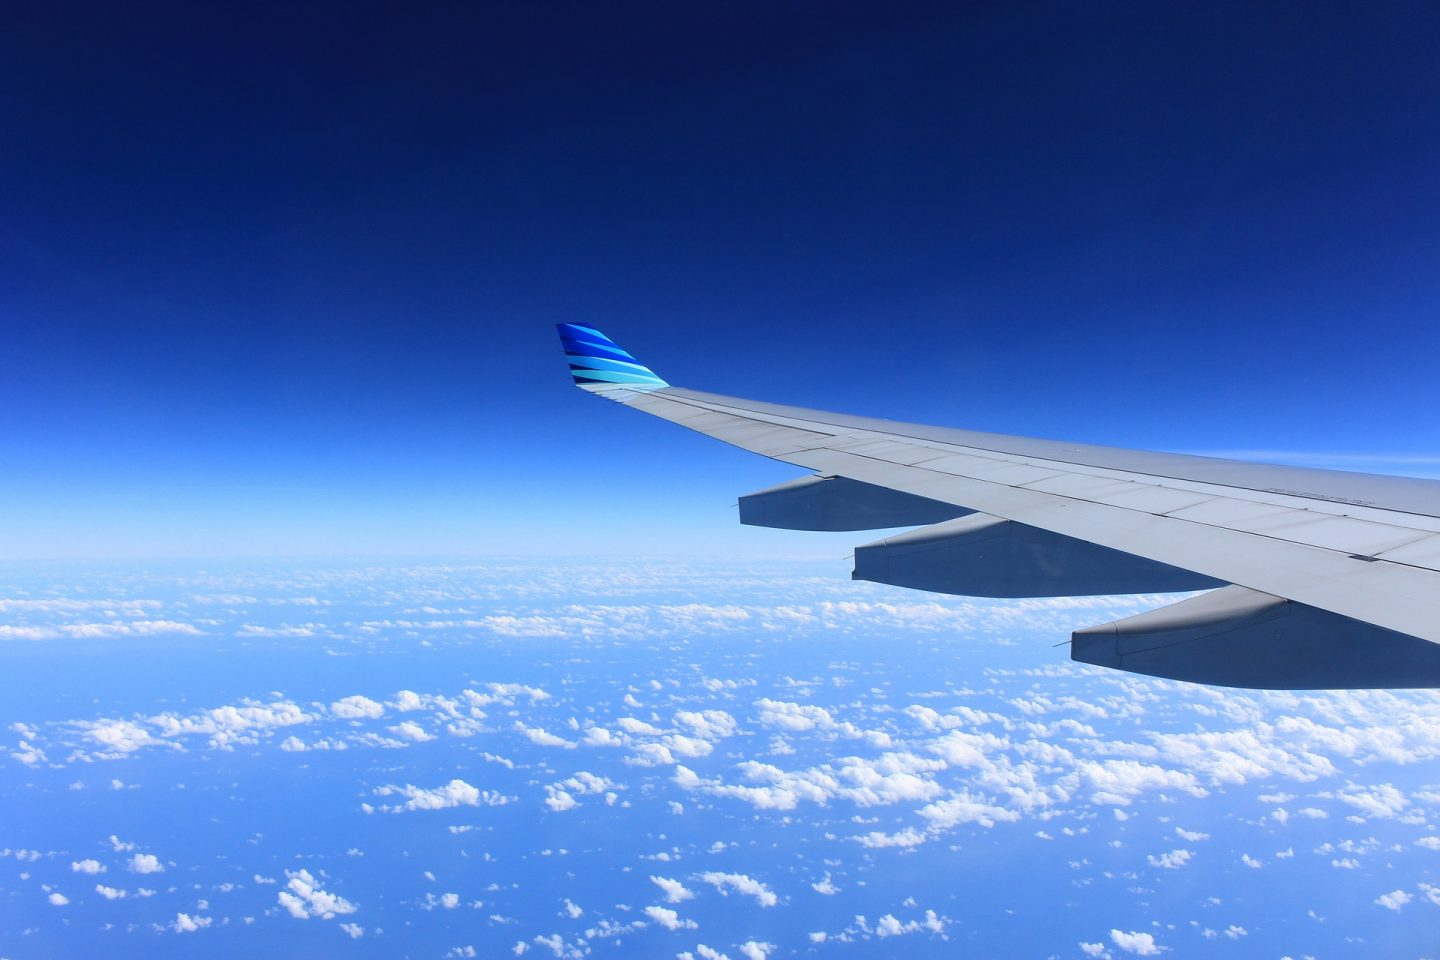 Top 5 Tips For Flying With Diabetes